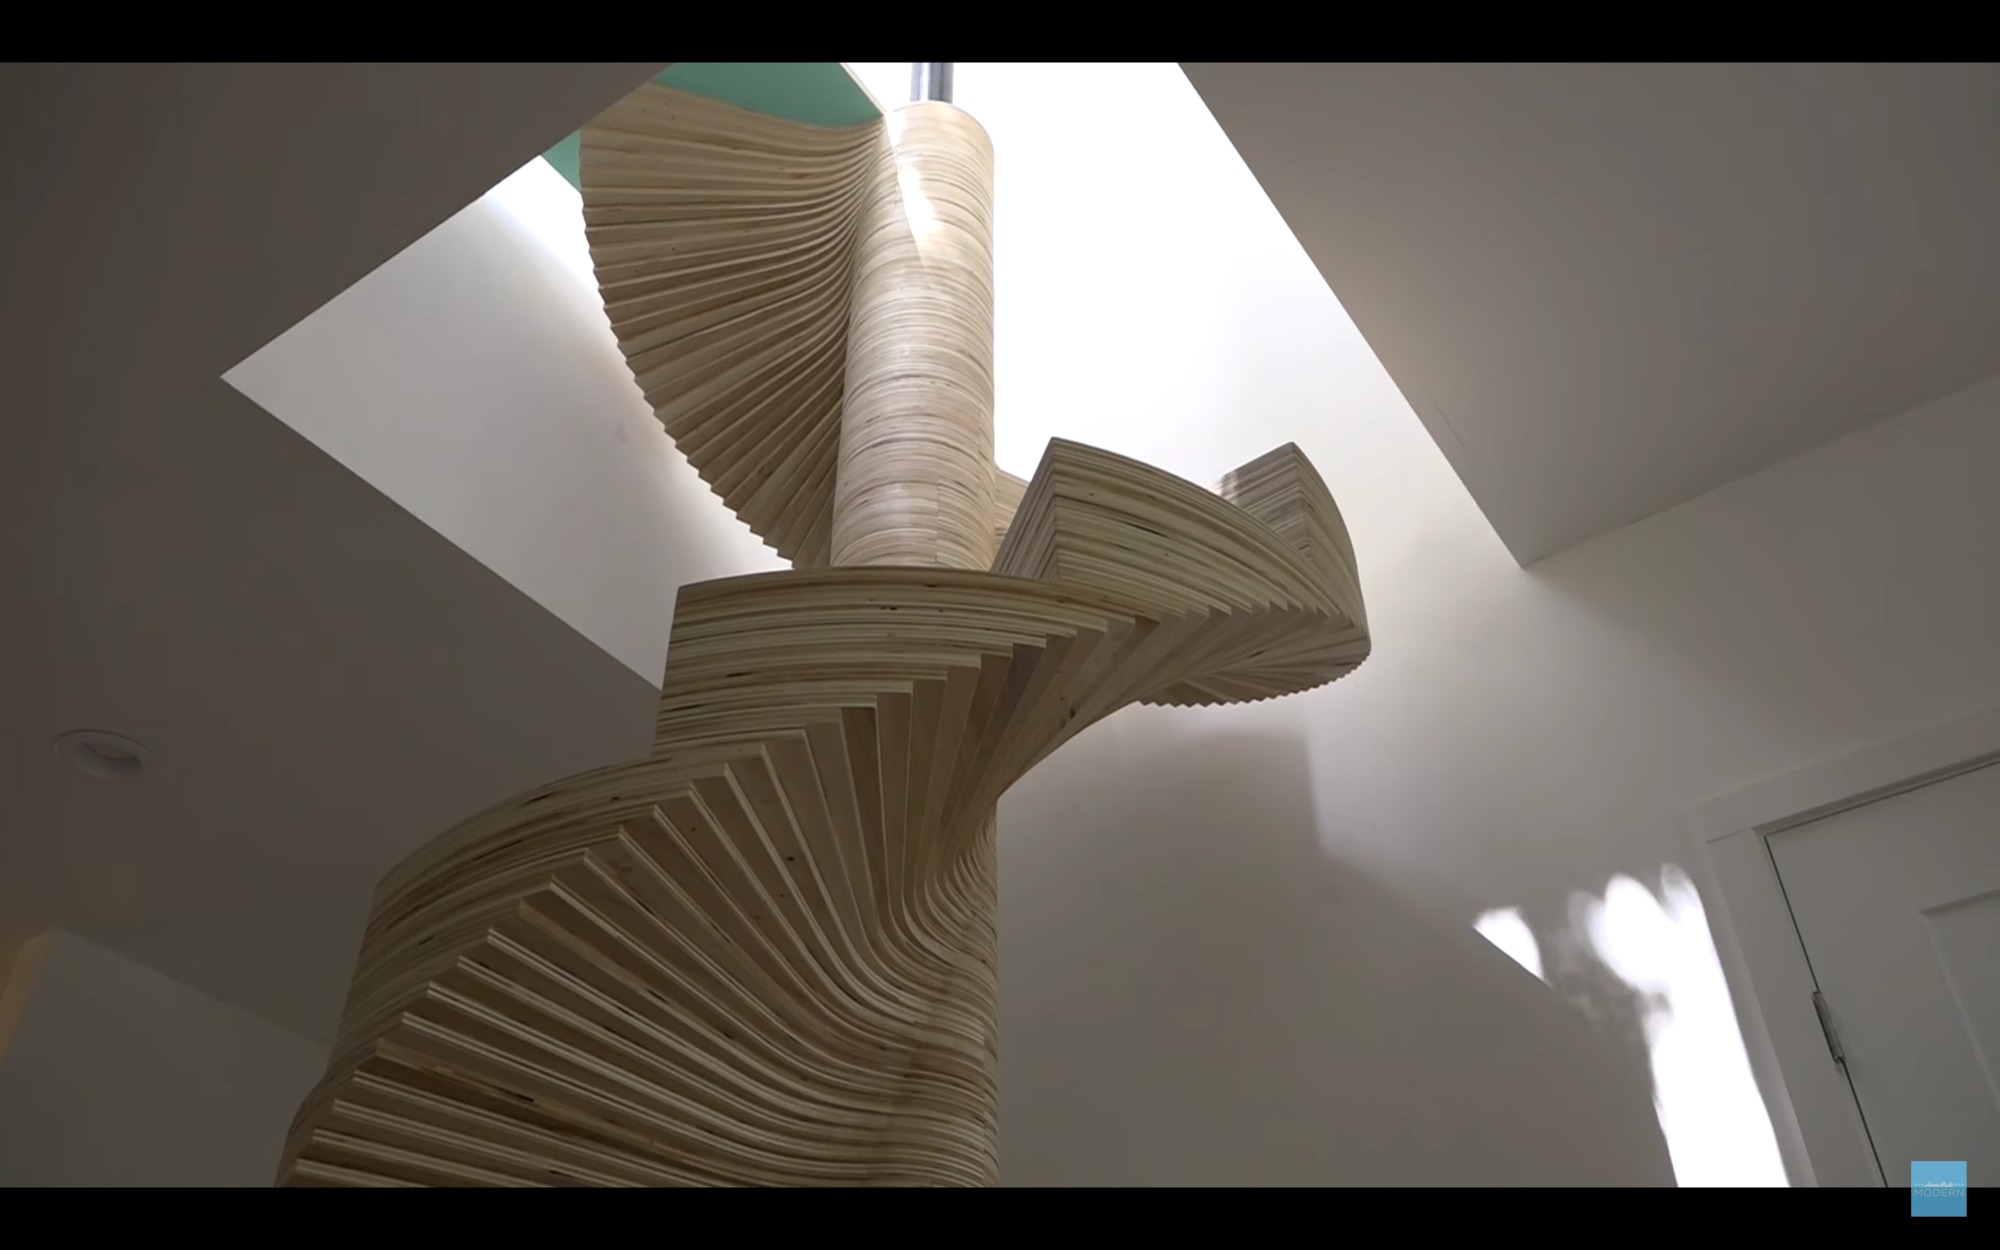 Video: How To Build Your Own Spiral Staircase Using A CNC Router | ArchDaily